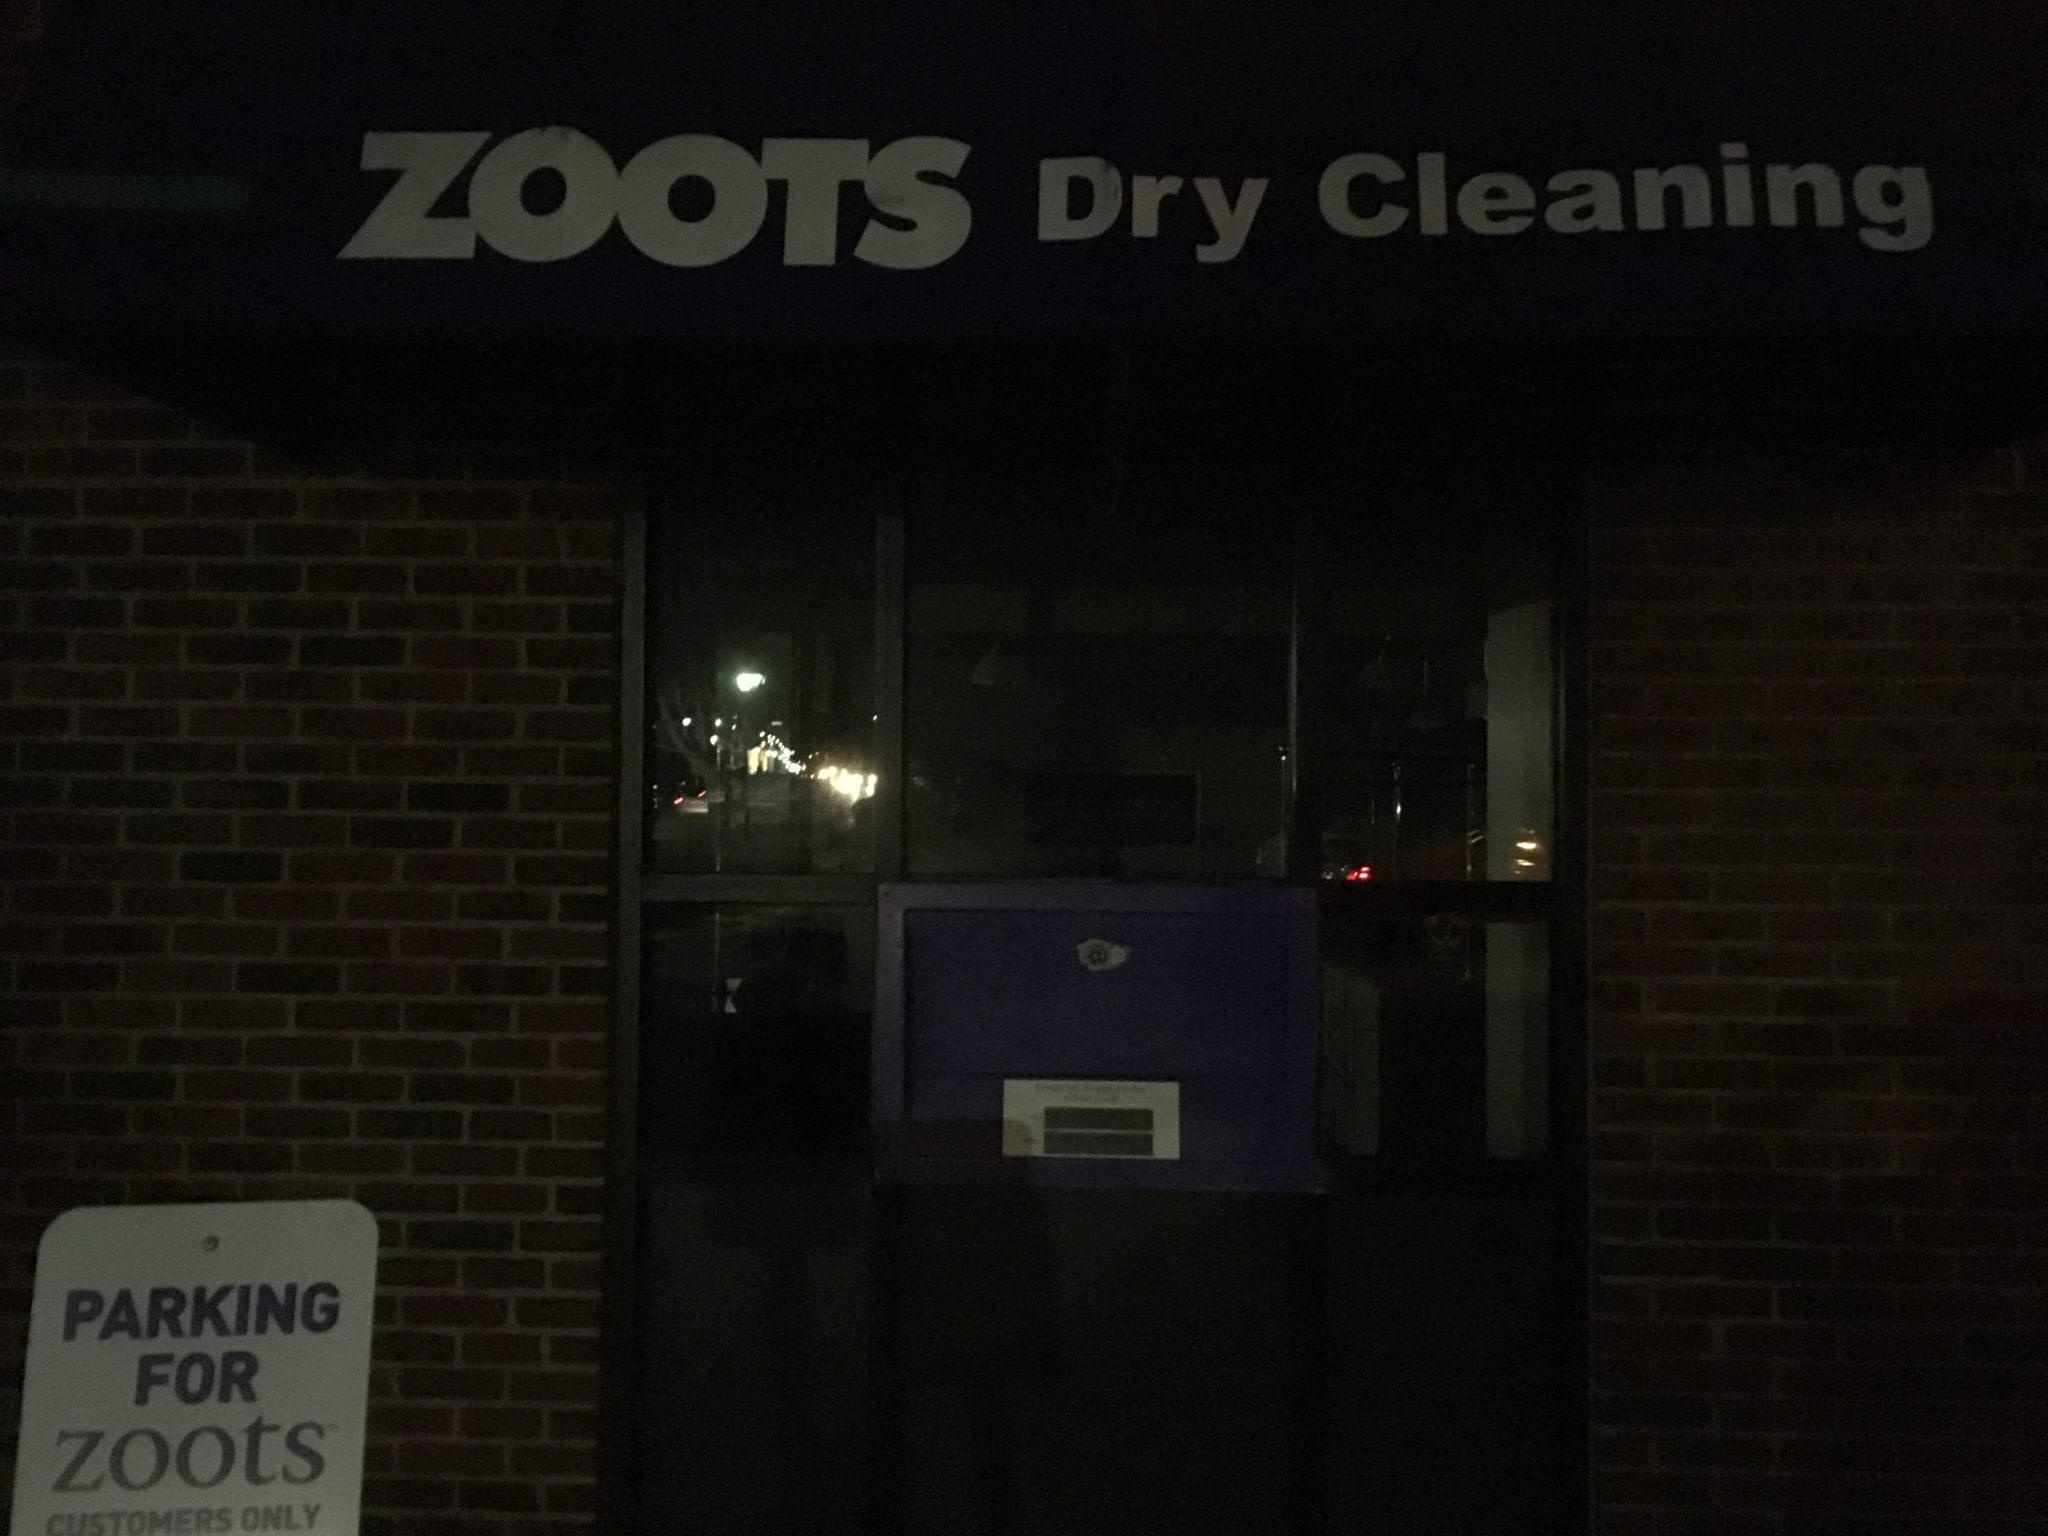 zoots the cleaner cleaner Zoots corporation provides dry cleaning, laundering, alteration, and draperies and home upholstery cleaning services the company also offers shoe and boot repair, leather cleaning, wedding gowns.